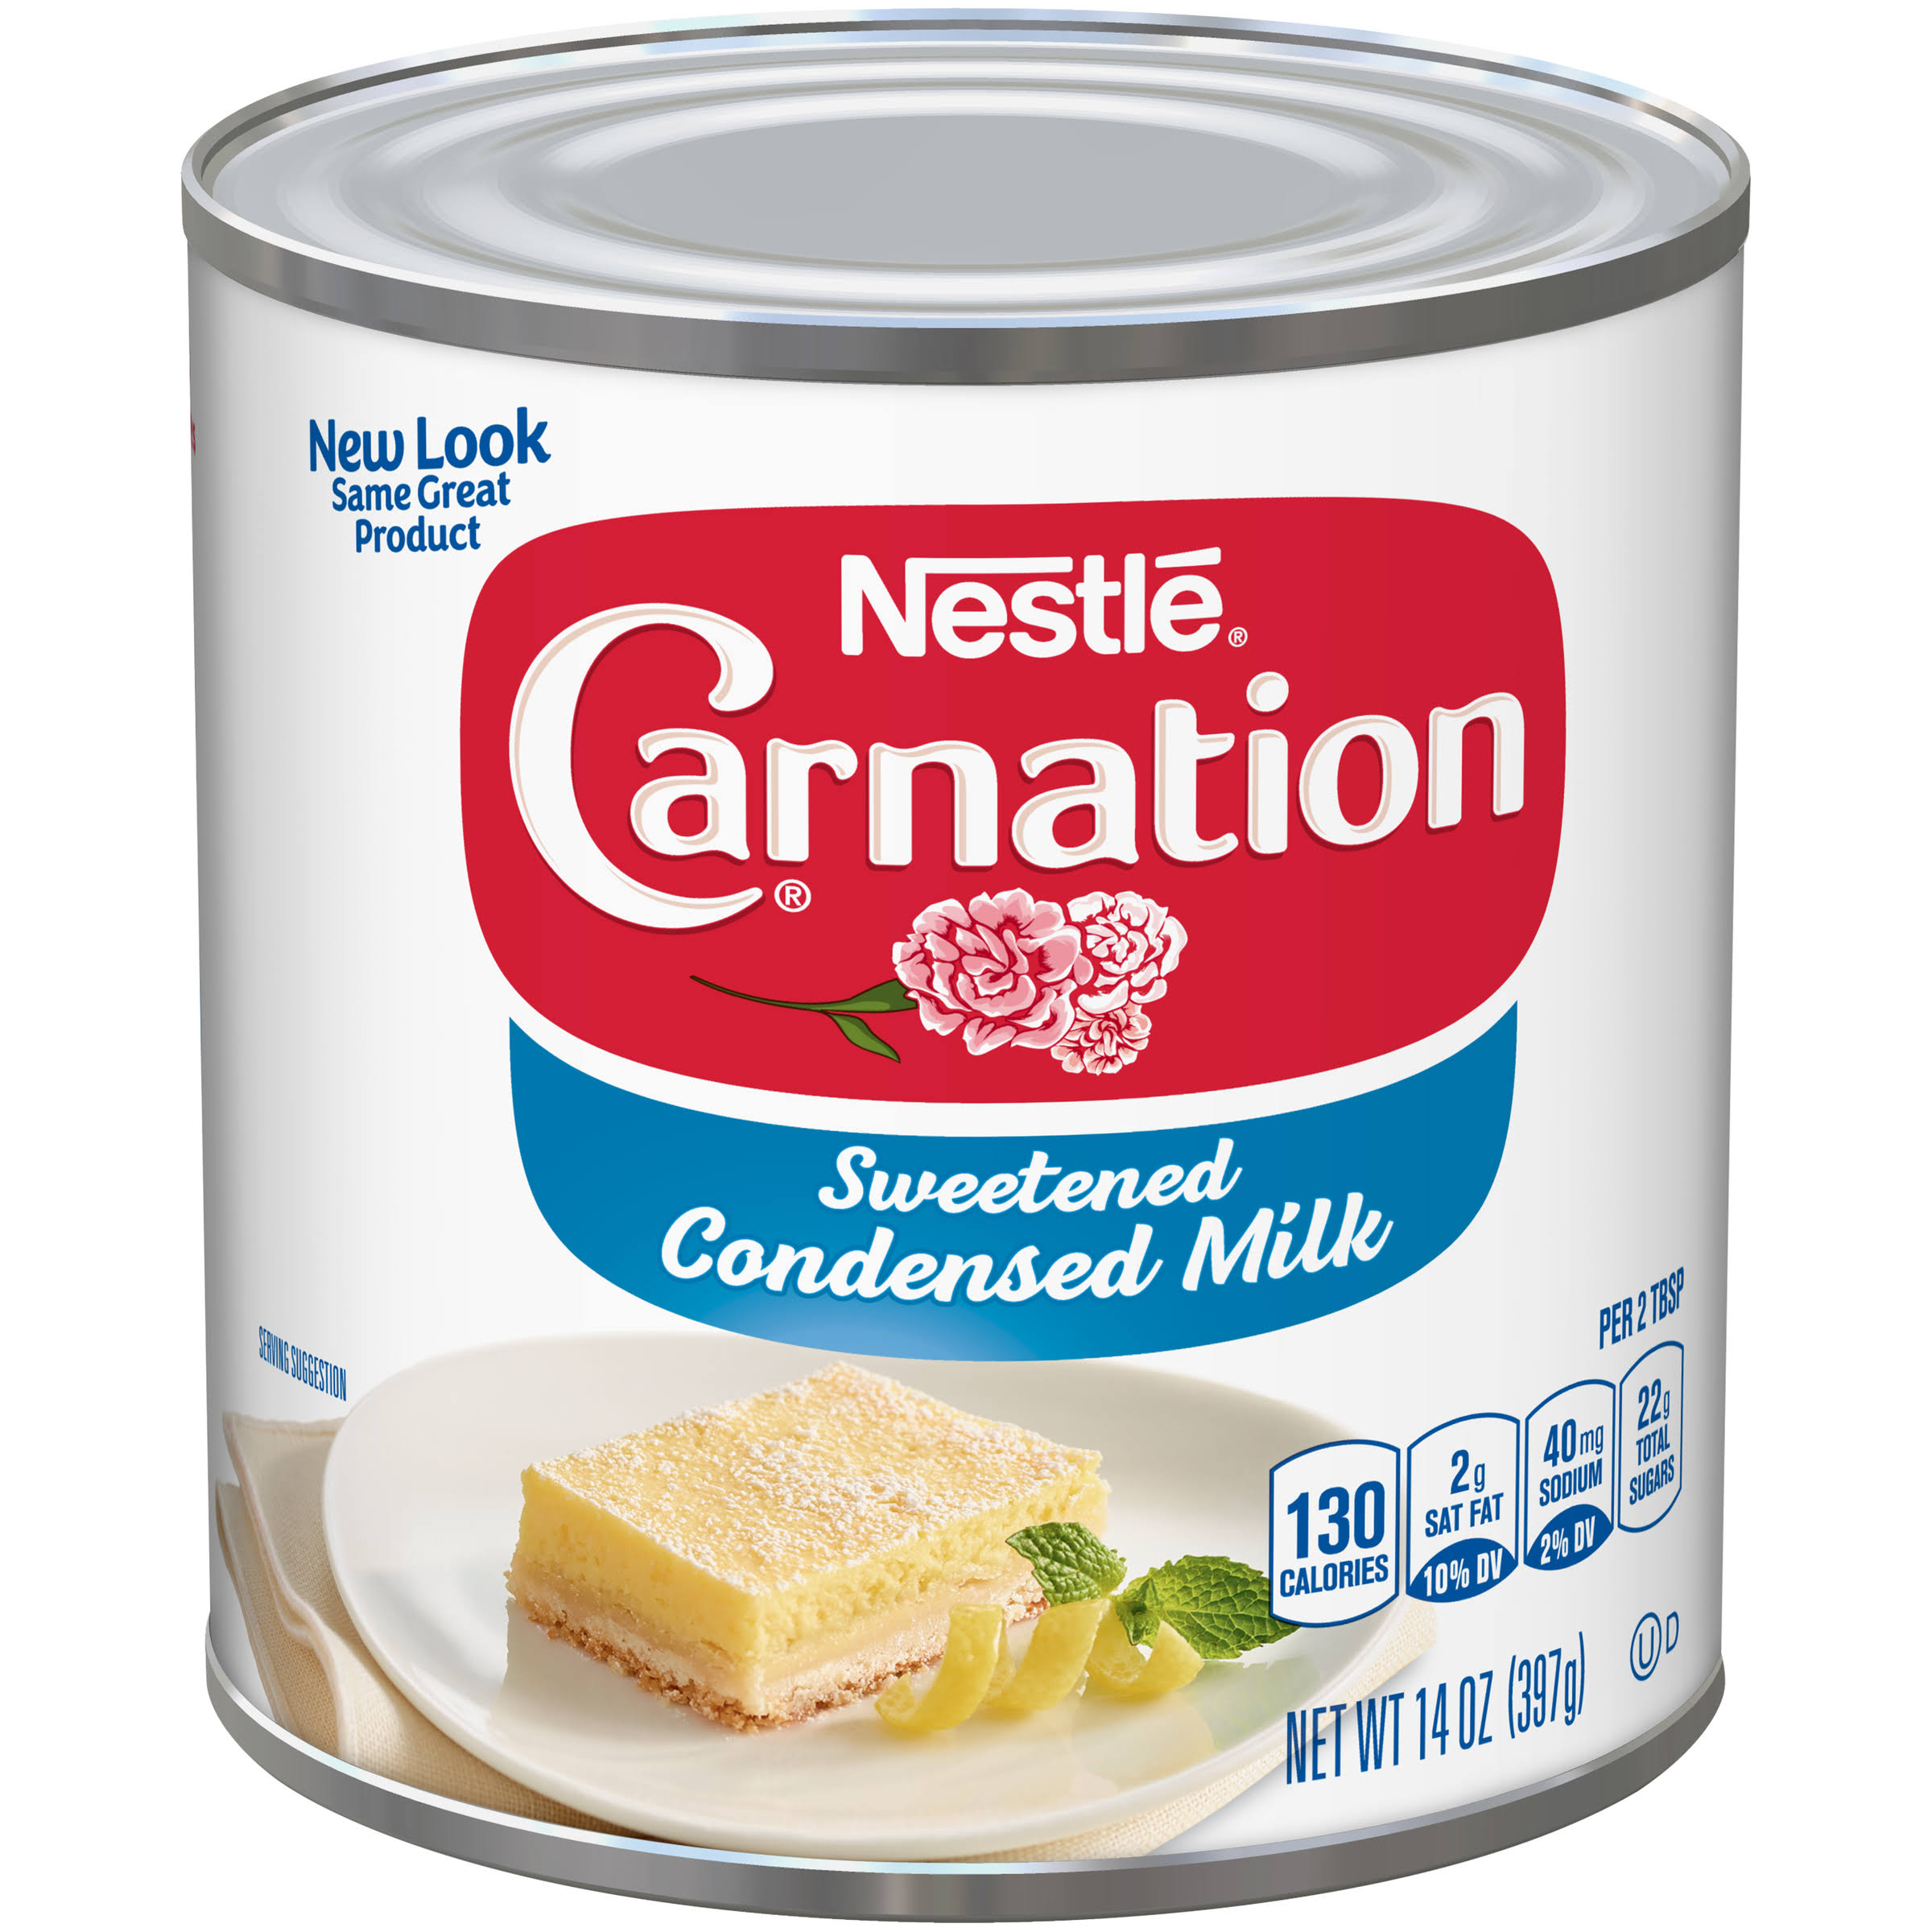 Nestlé Carnation Condensed Milk - Sweetened, 14oz